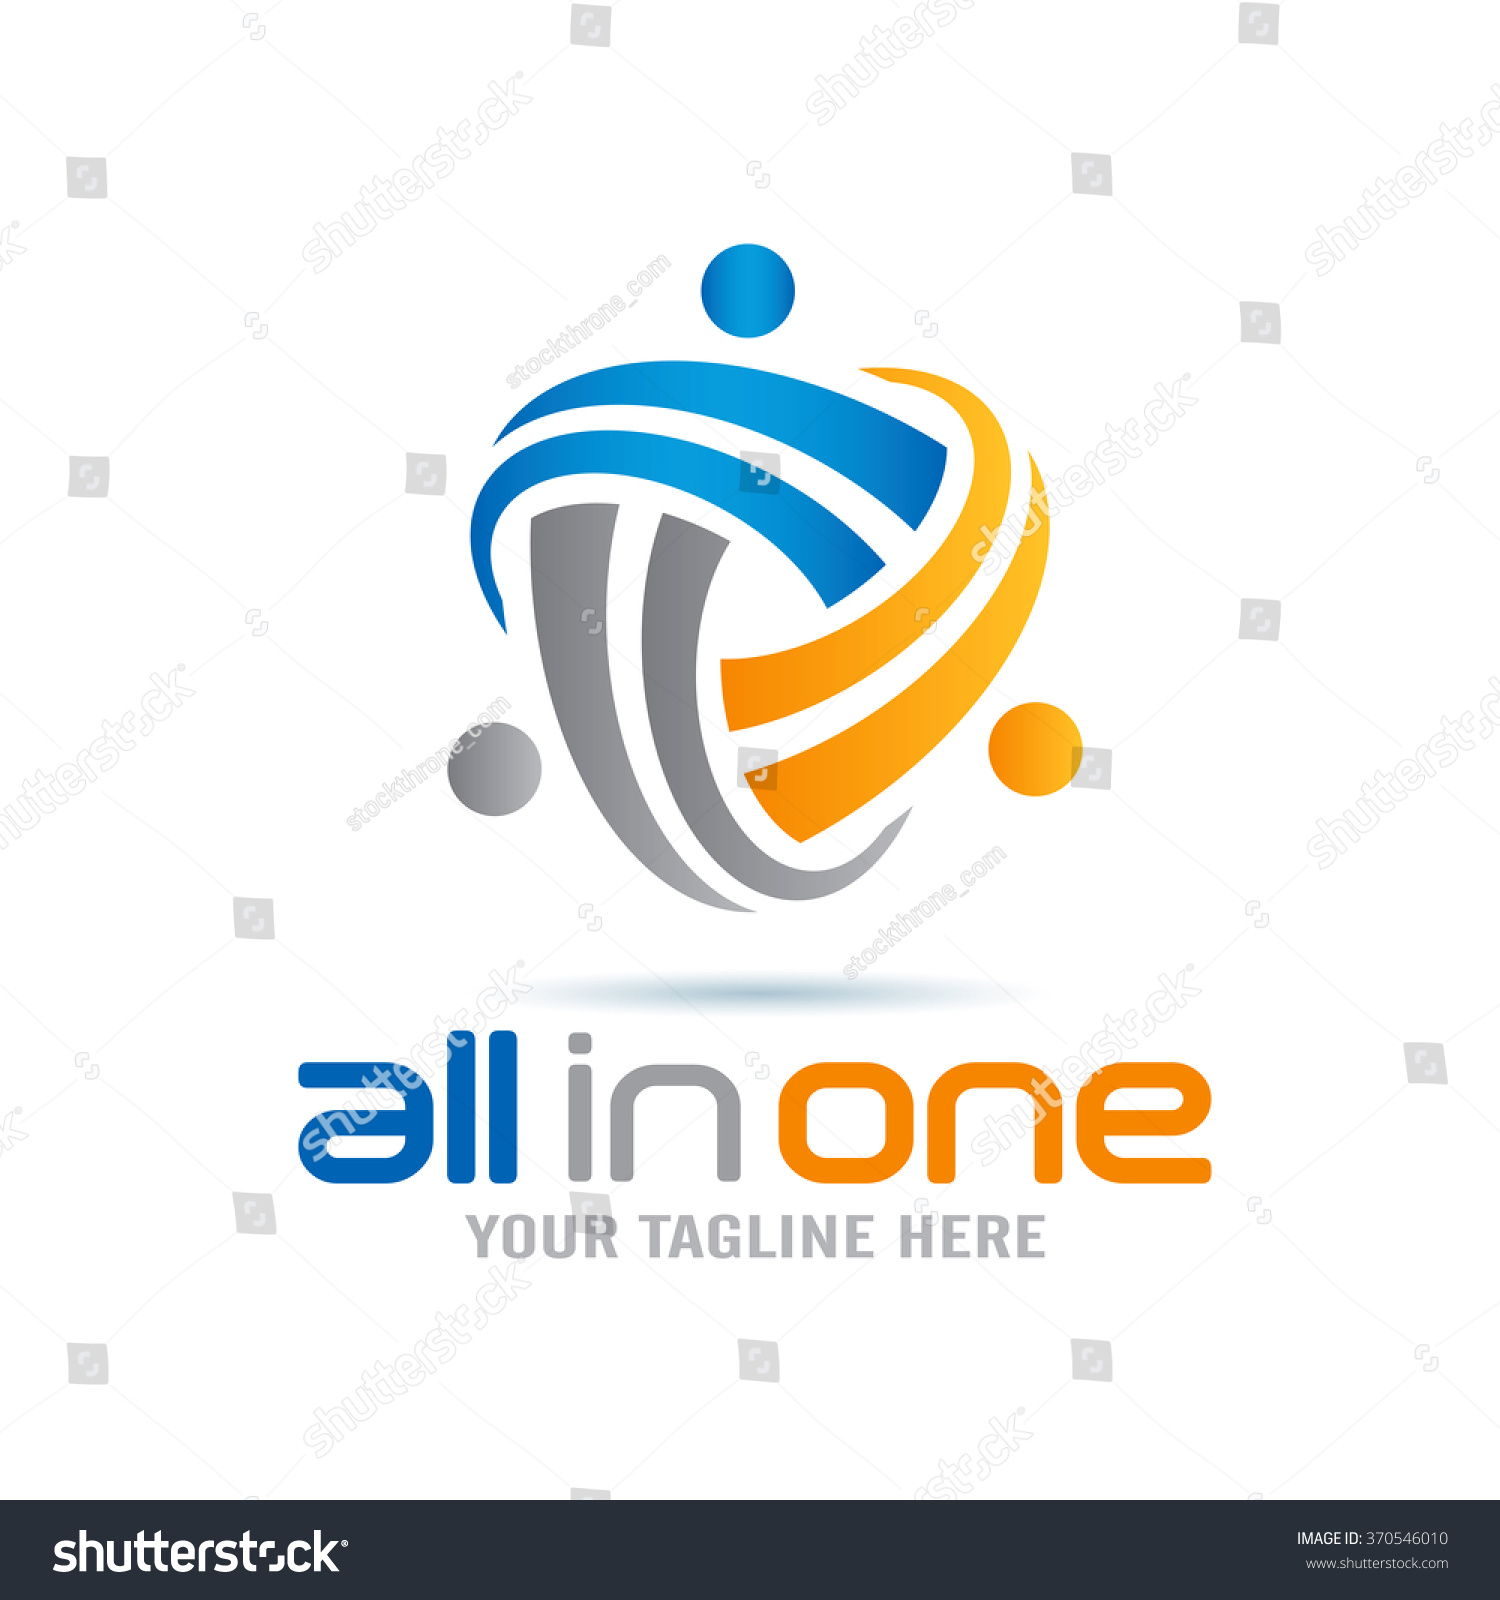 all one abstract people logo icon stock vector 370546010 shutterstock. Black Bedroom Furniture Sets. Home Design Ideas